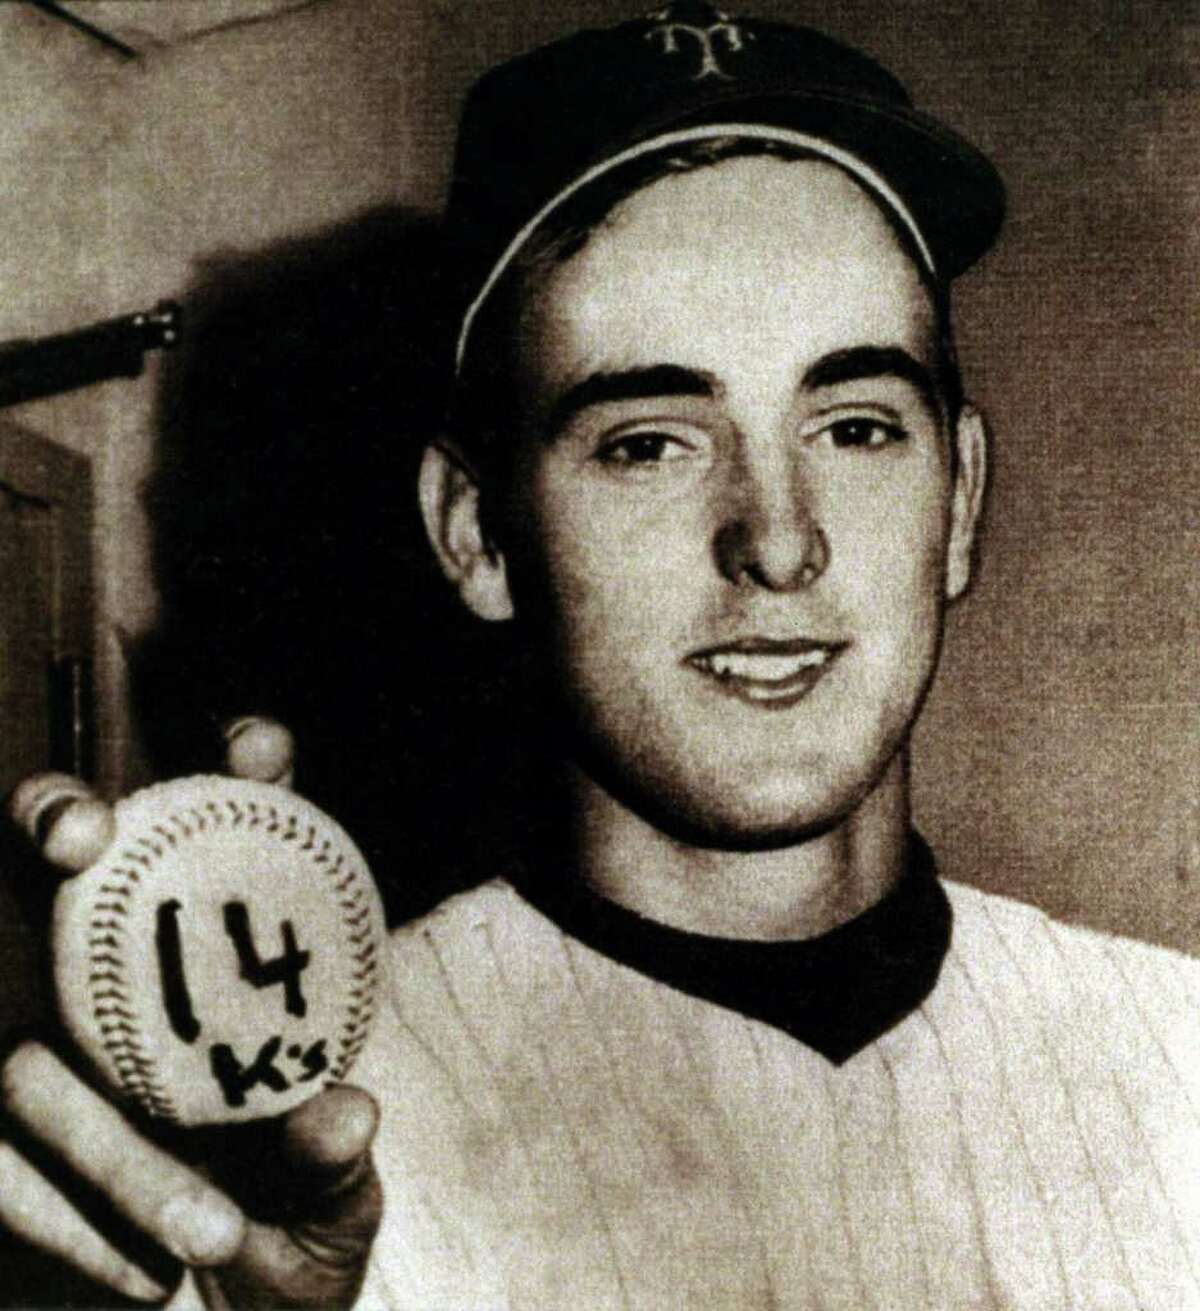 This photo of Nolan Ryan holding the baseball when he set the Mets team record with 14 strikeouts against the Reds in 1968 is among the items that will be on display at the Texas Sports Hall of Fame in Waco beginning March 21. Click through the gallery to see more photos from the Nolan Ryan Museum.